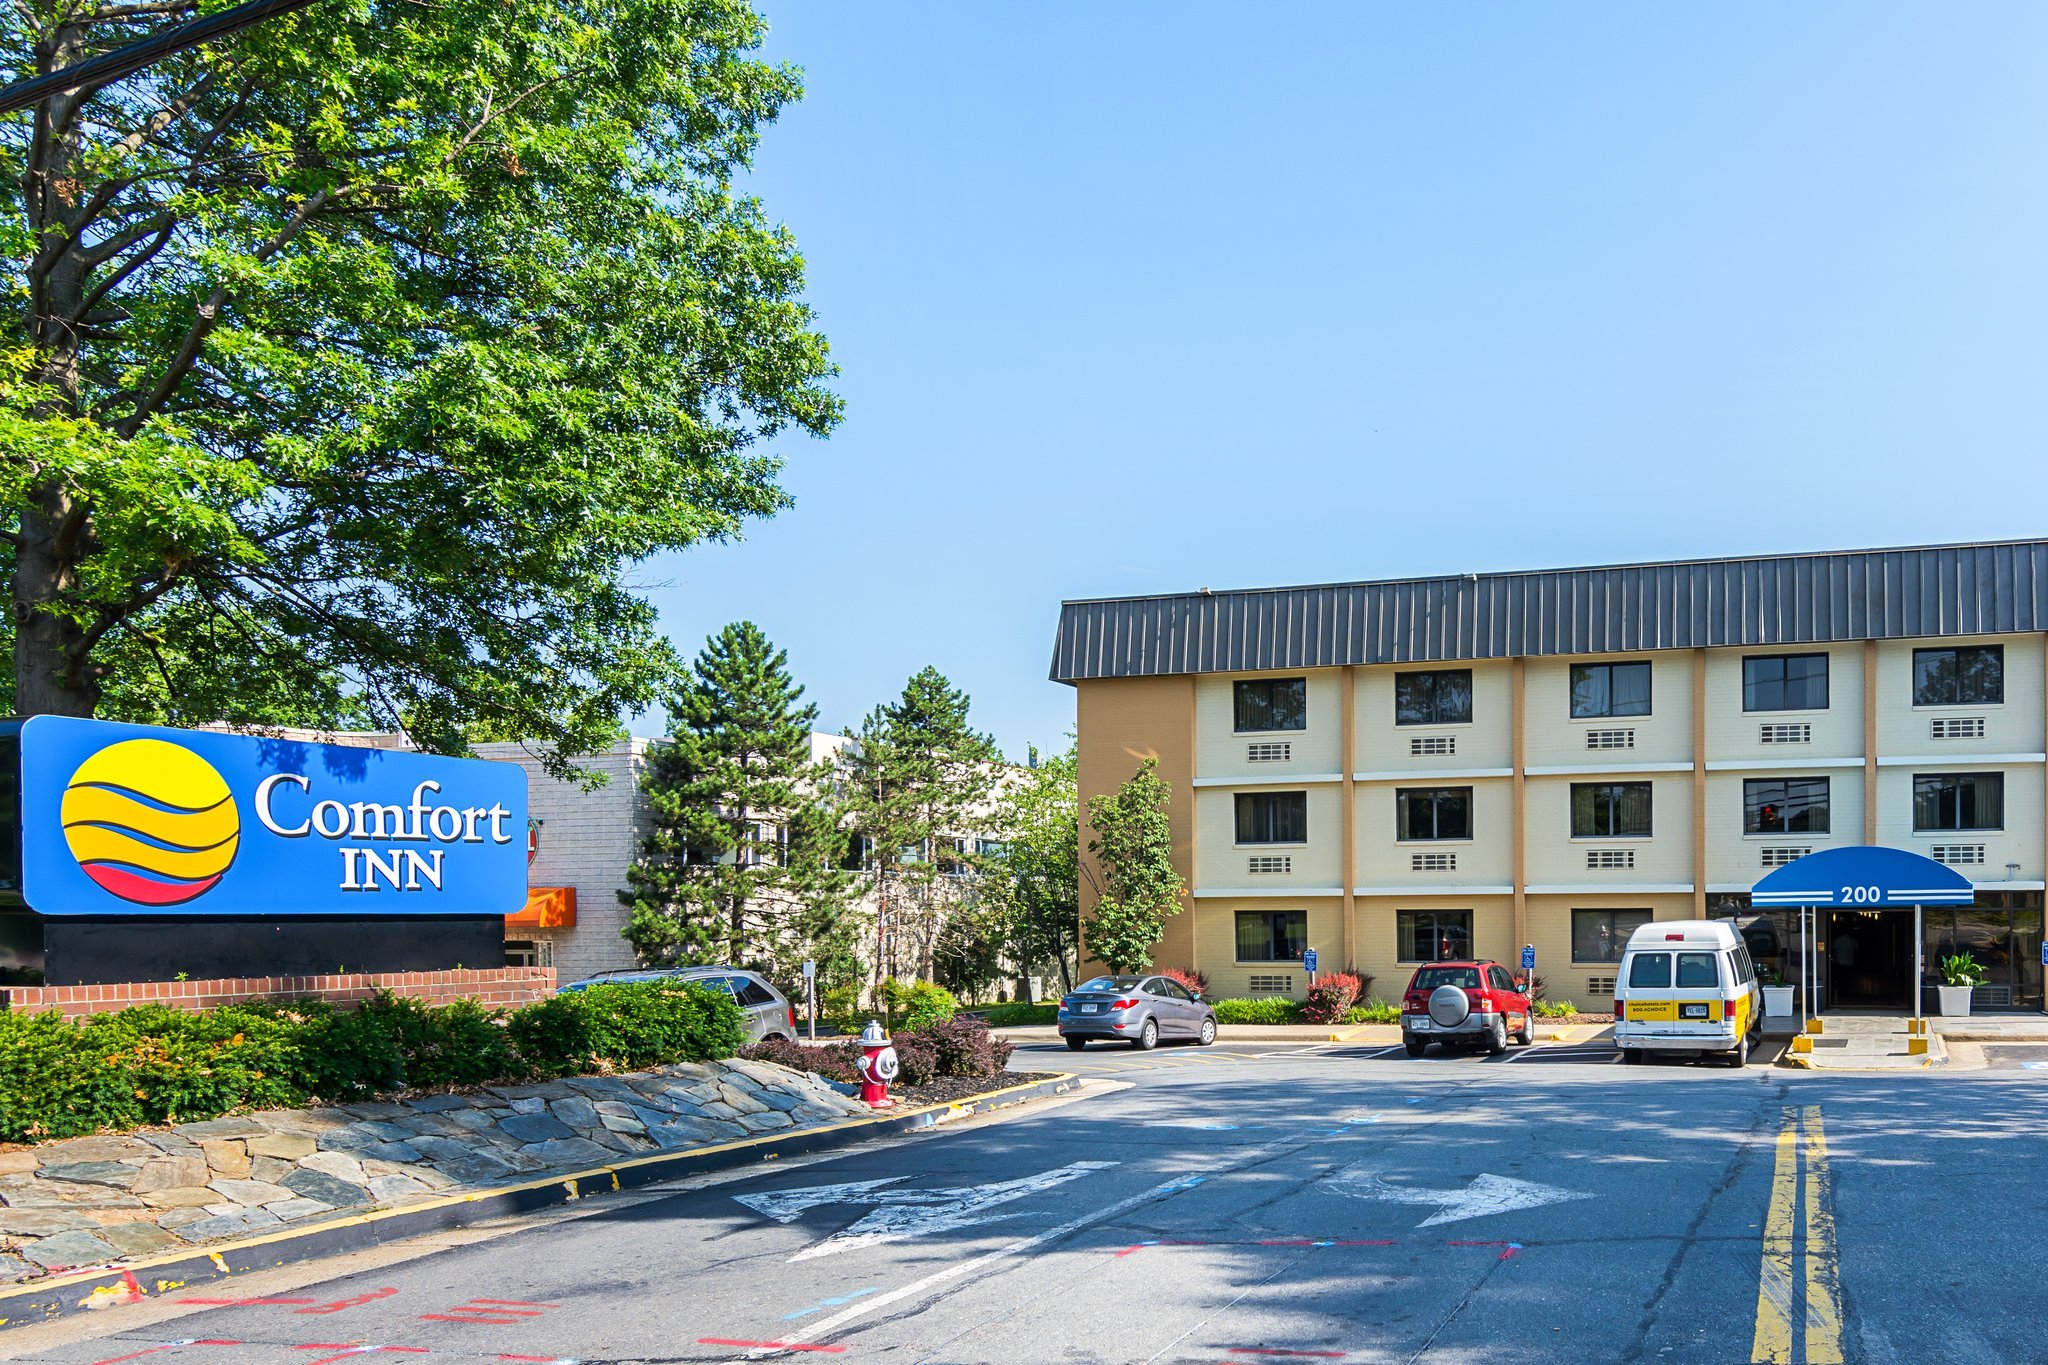 Comfort Inn Dulles International Airport